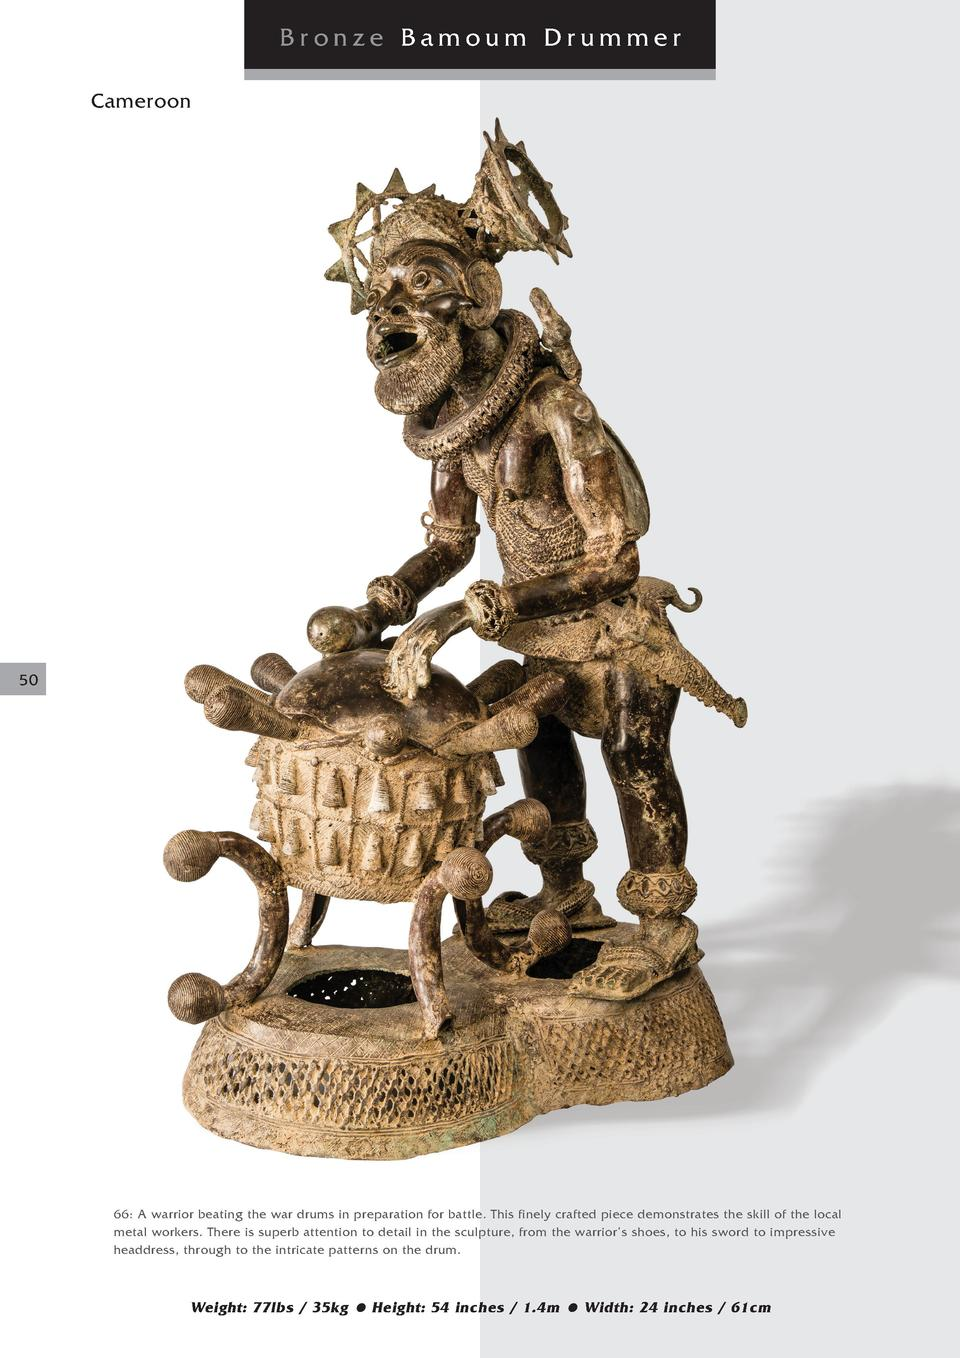 Bronze Bamoum Drummer Cameroon  50  66  A warrior beating the war drums in preparation for battle. This finely crafted pie...